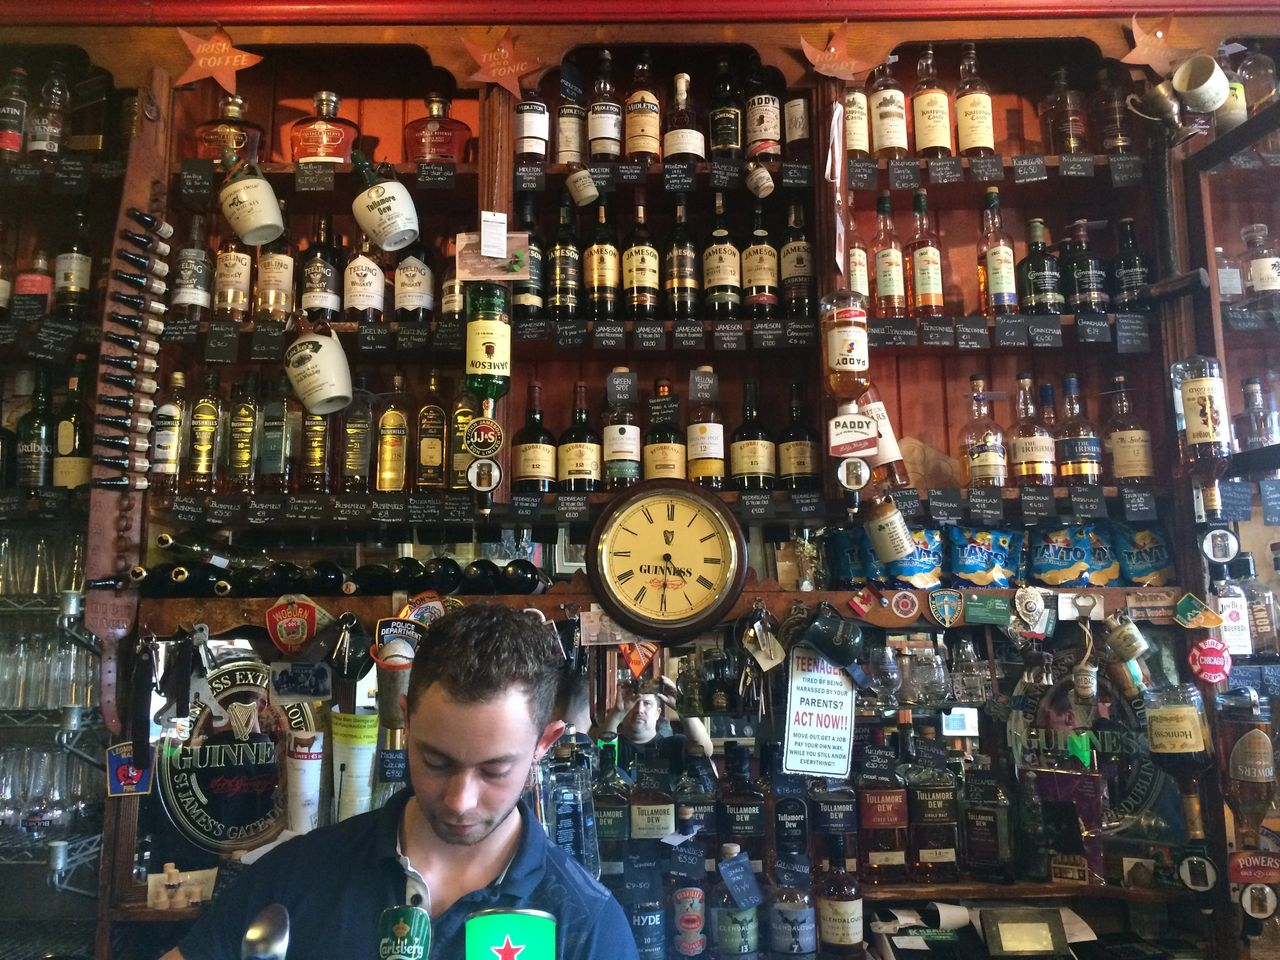 Dick Mack's pub in Ireland offers great whiskey